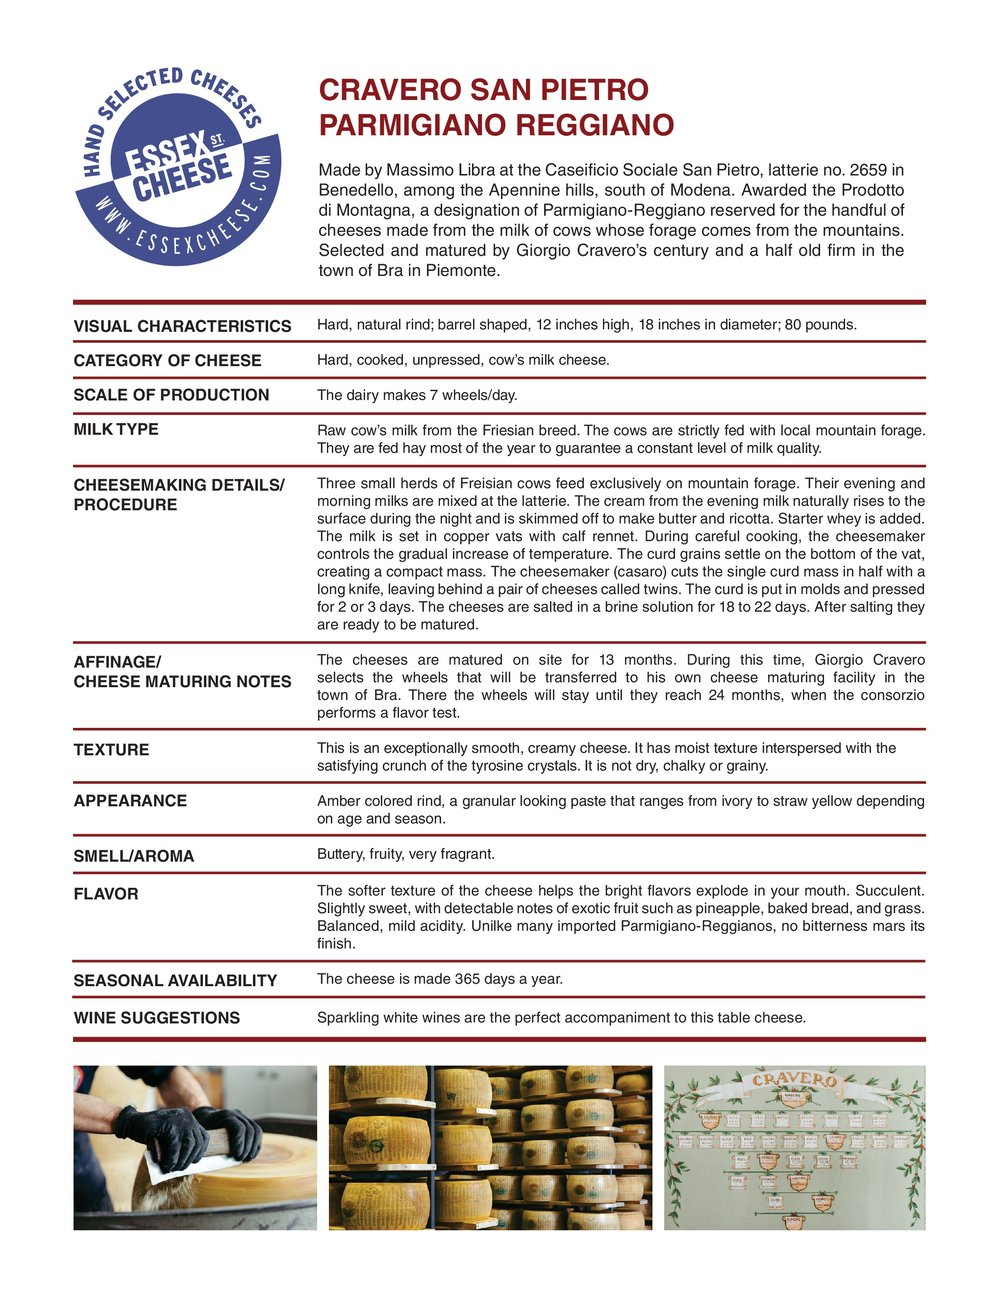 Cravero Parmigiano ReggianoSan Pietro Specifications - Details on Giorgio Cravero's Parmigiano Reggiano from San Pietro. 8.5 x 11 inch PDF to download and print for training and reference.